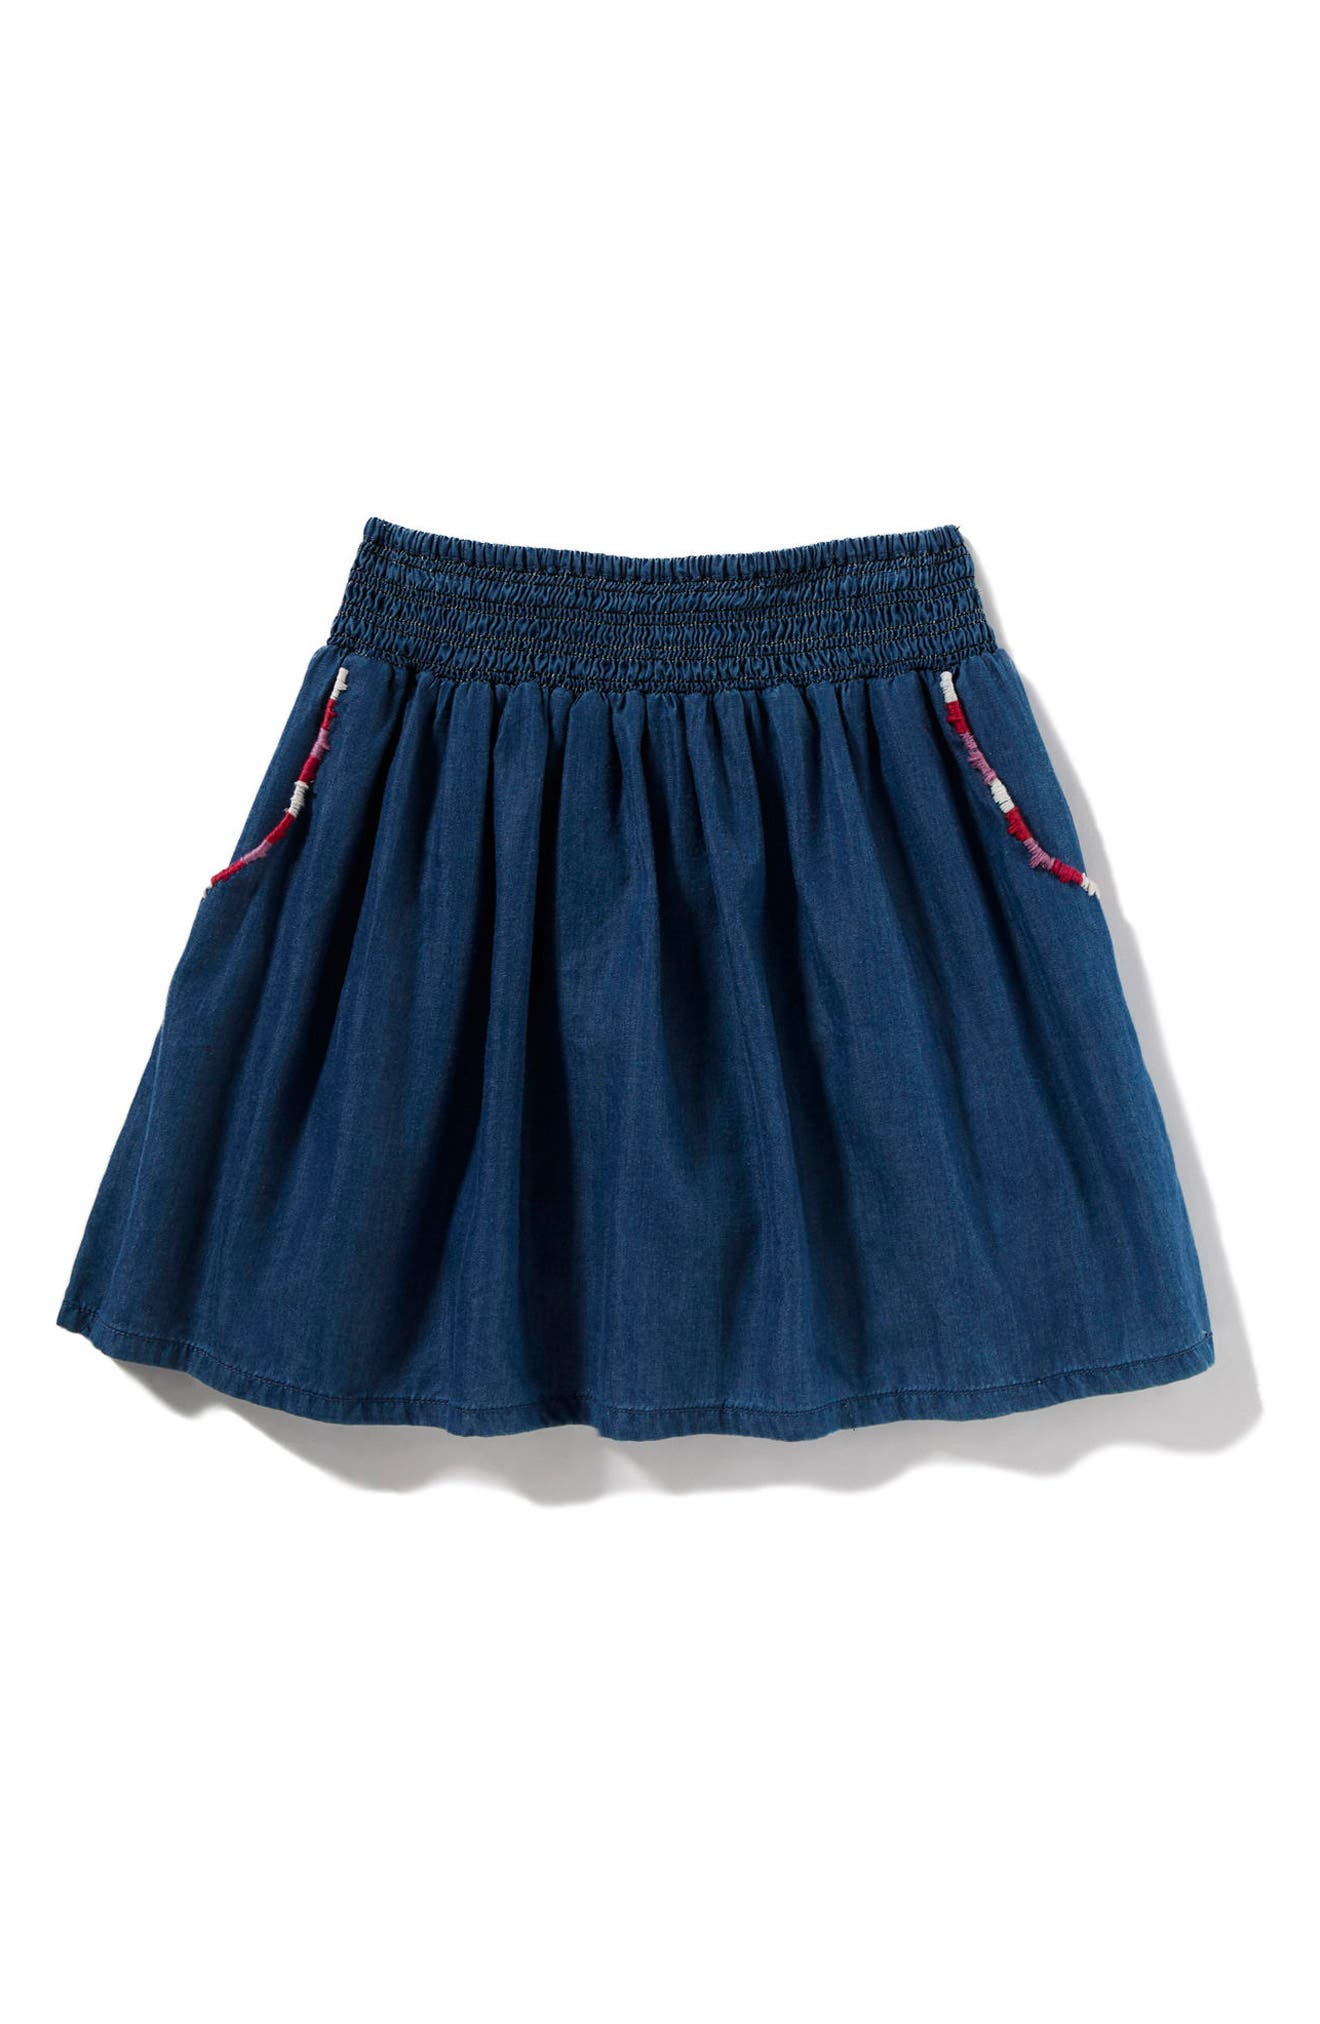 Main Image - Peek Bellen Chambray Skort (Toddler Girls, Little Girls & Big Girls)